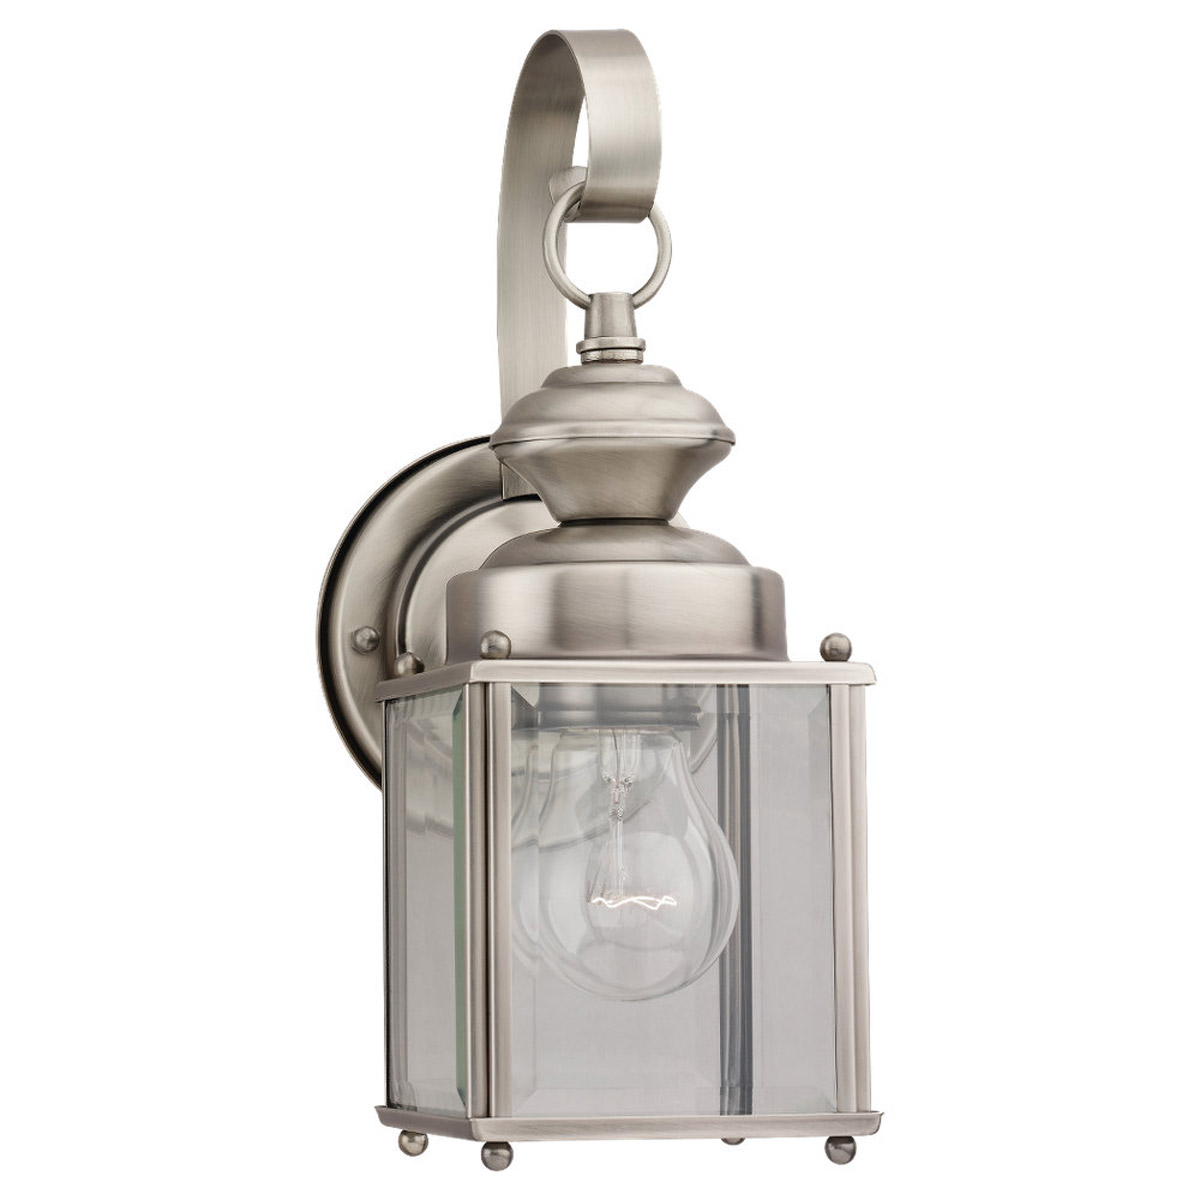 Sea Gull 8456-965 Jamestowne 1 Light 11 inch Antique Brushed Nickel Outdoor Wall Lantern photo